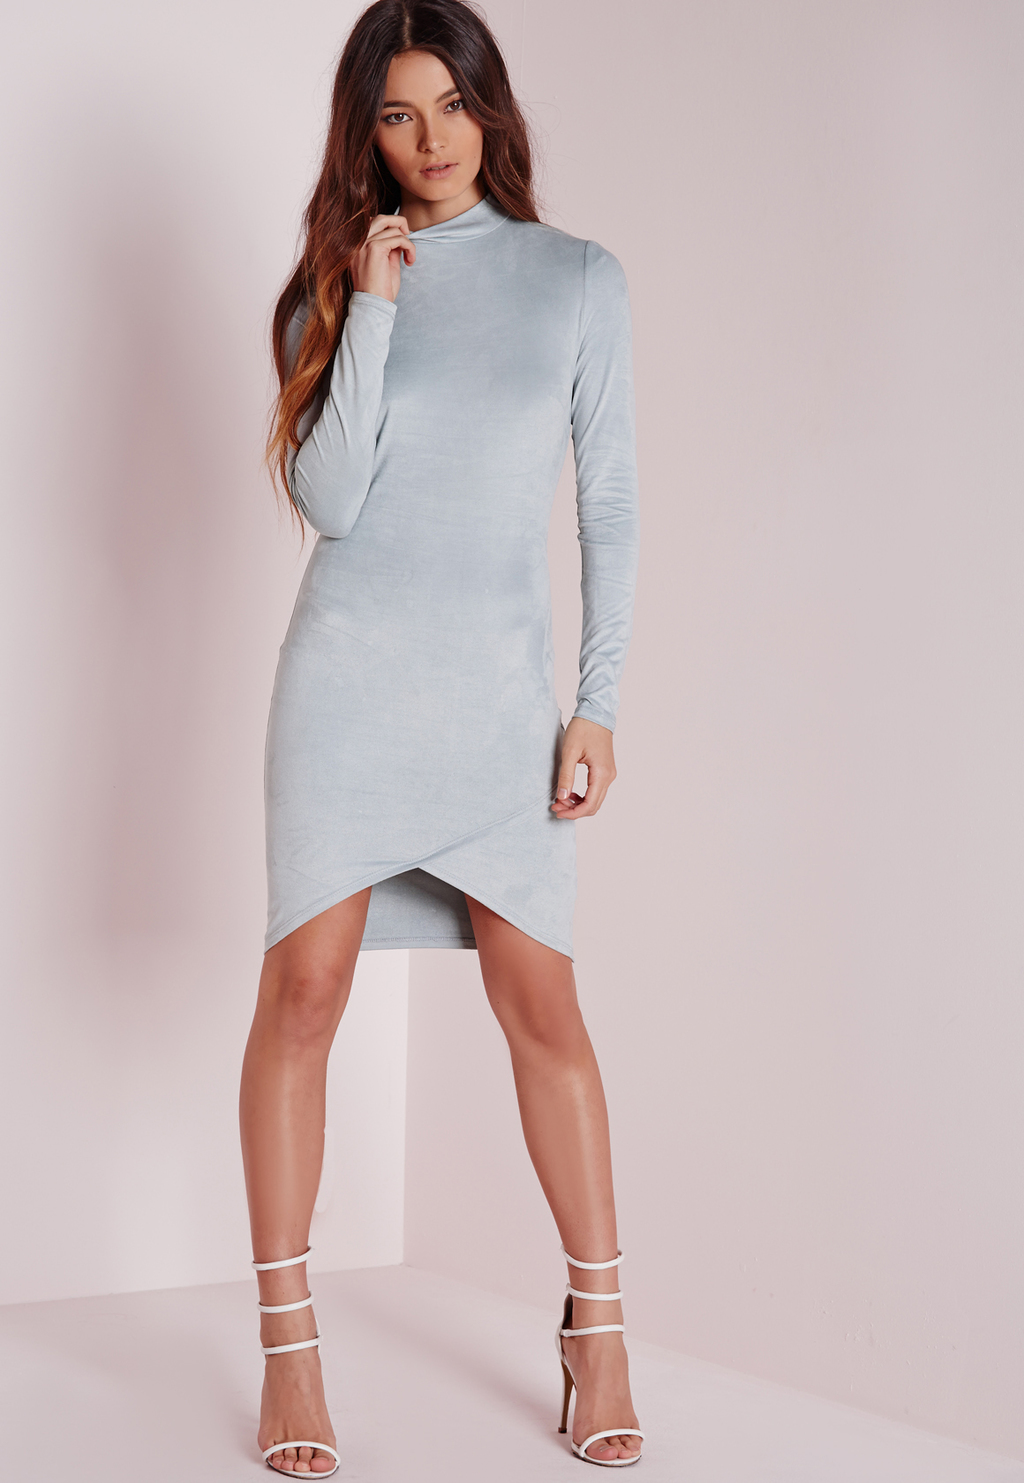 Long Sleeve Suede Bodycon Dress Powder Blue, Blue - length: mid thigh; fit: tight; pattern: plain; neckline: high neck; style: bodycon; hip detail: draws attention to hips; predominant colour: pale blue; occasions: evening; fibres: polyester/polyamide - stretch; sleeve length: long sleeve; sleeve style: standard; pattern type: fabric; texture group: suede; season: s/s 2016; wardrobe: event